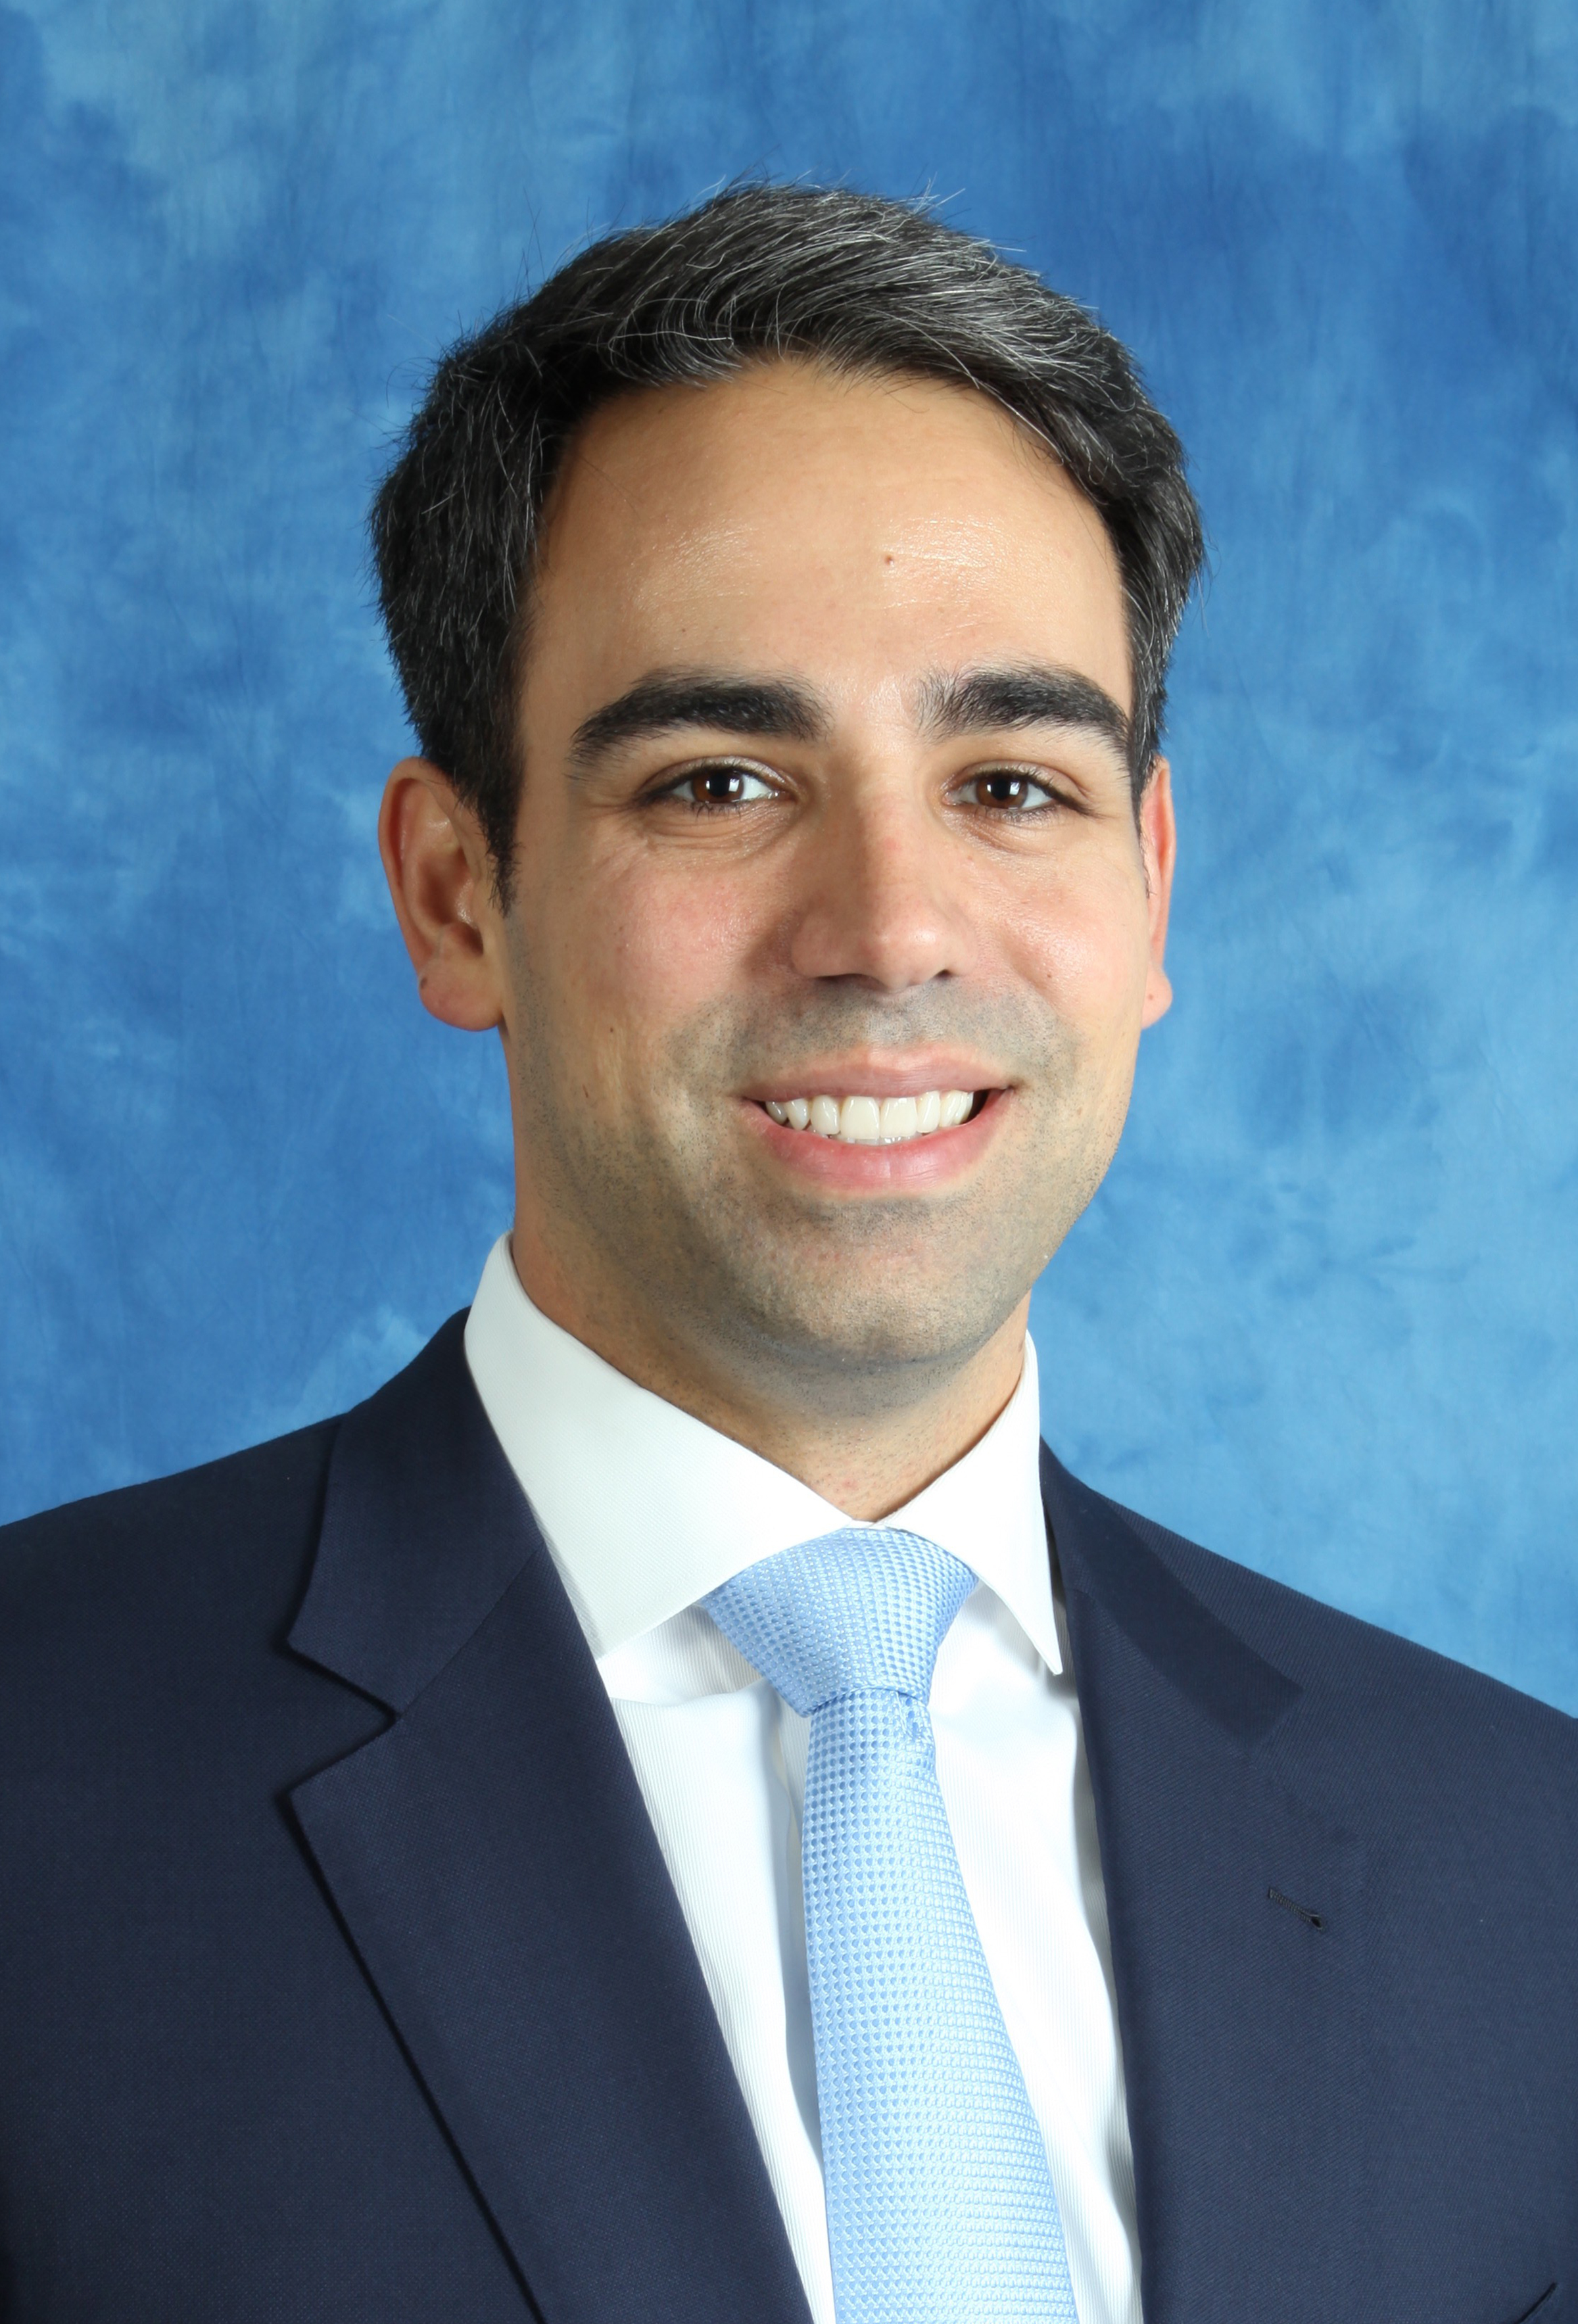 Drew Saad, head of strategic planning and execution at Farmers Insurance